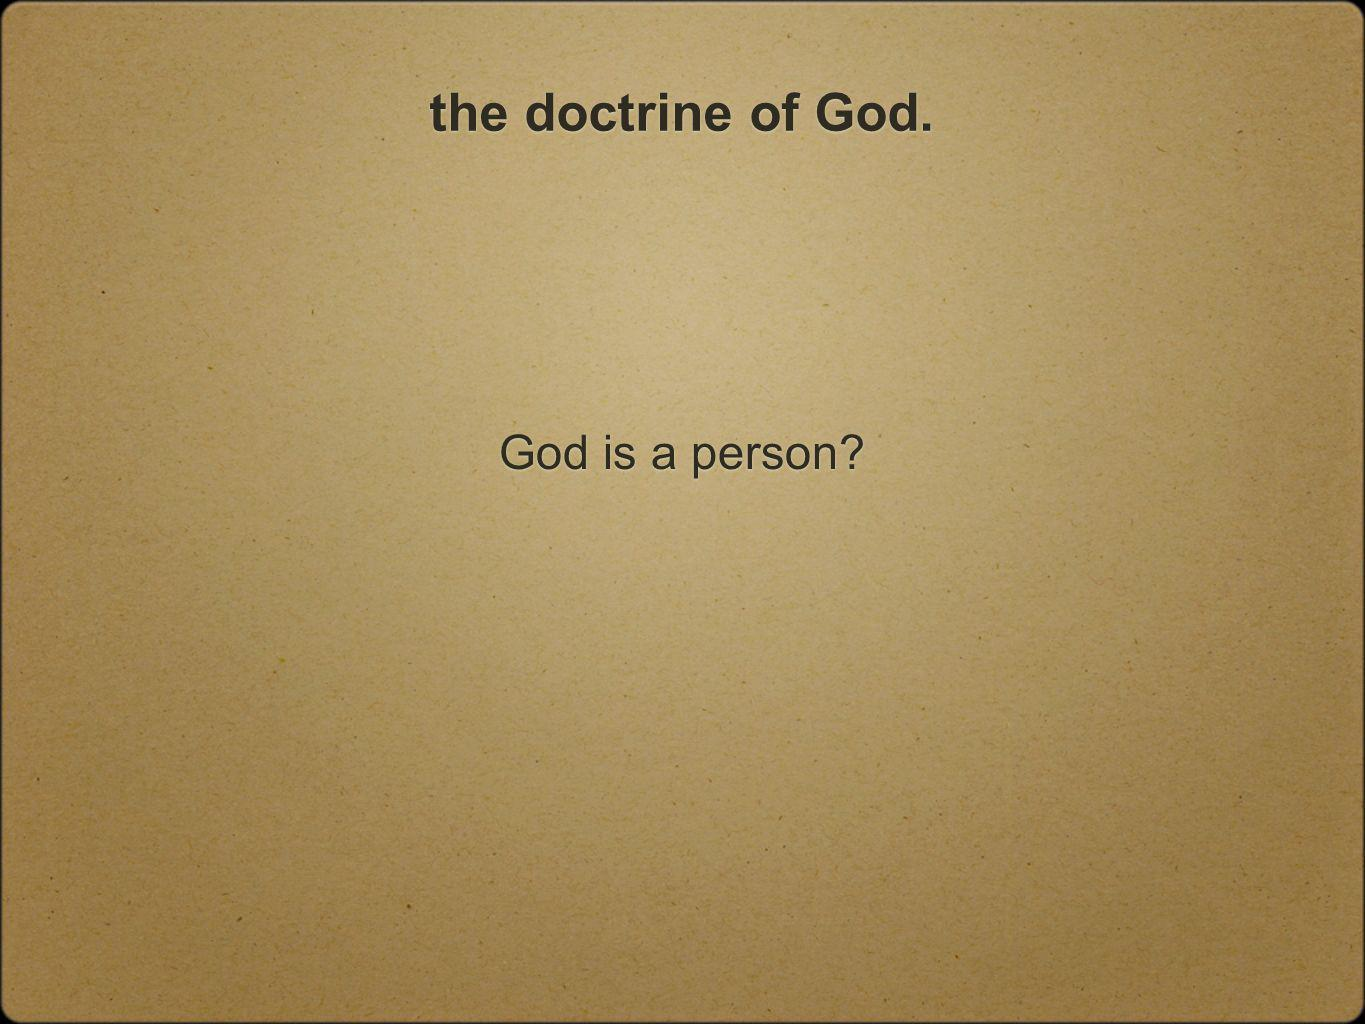 the doctrine of God. God is a person